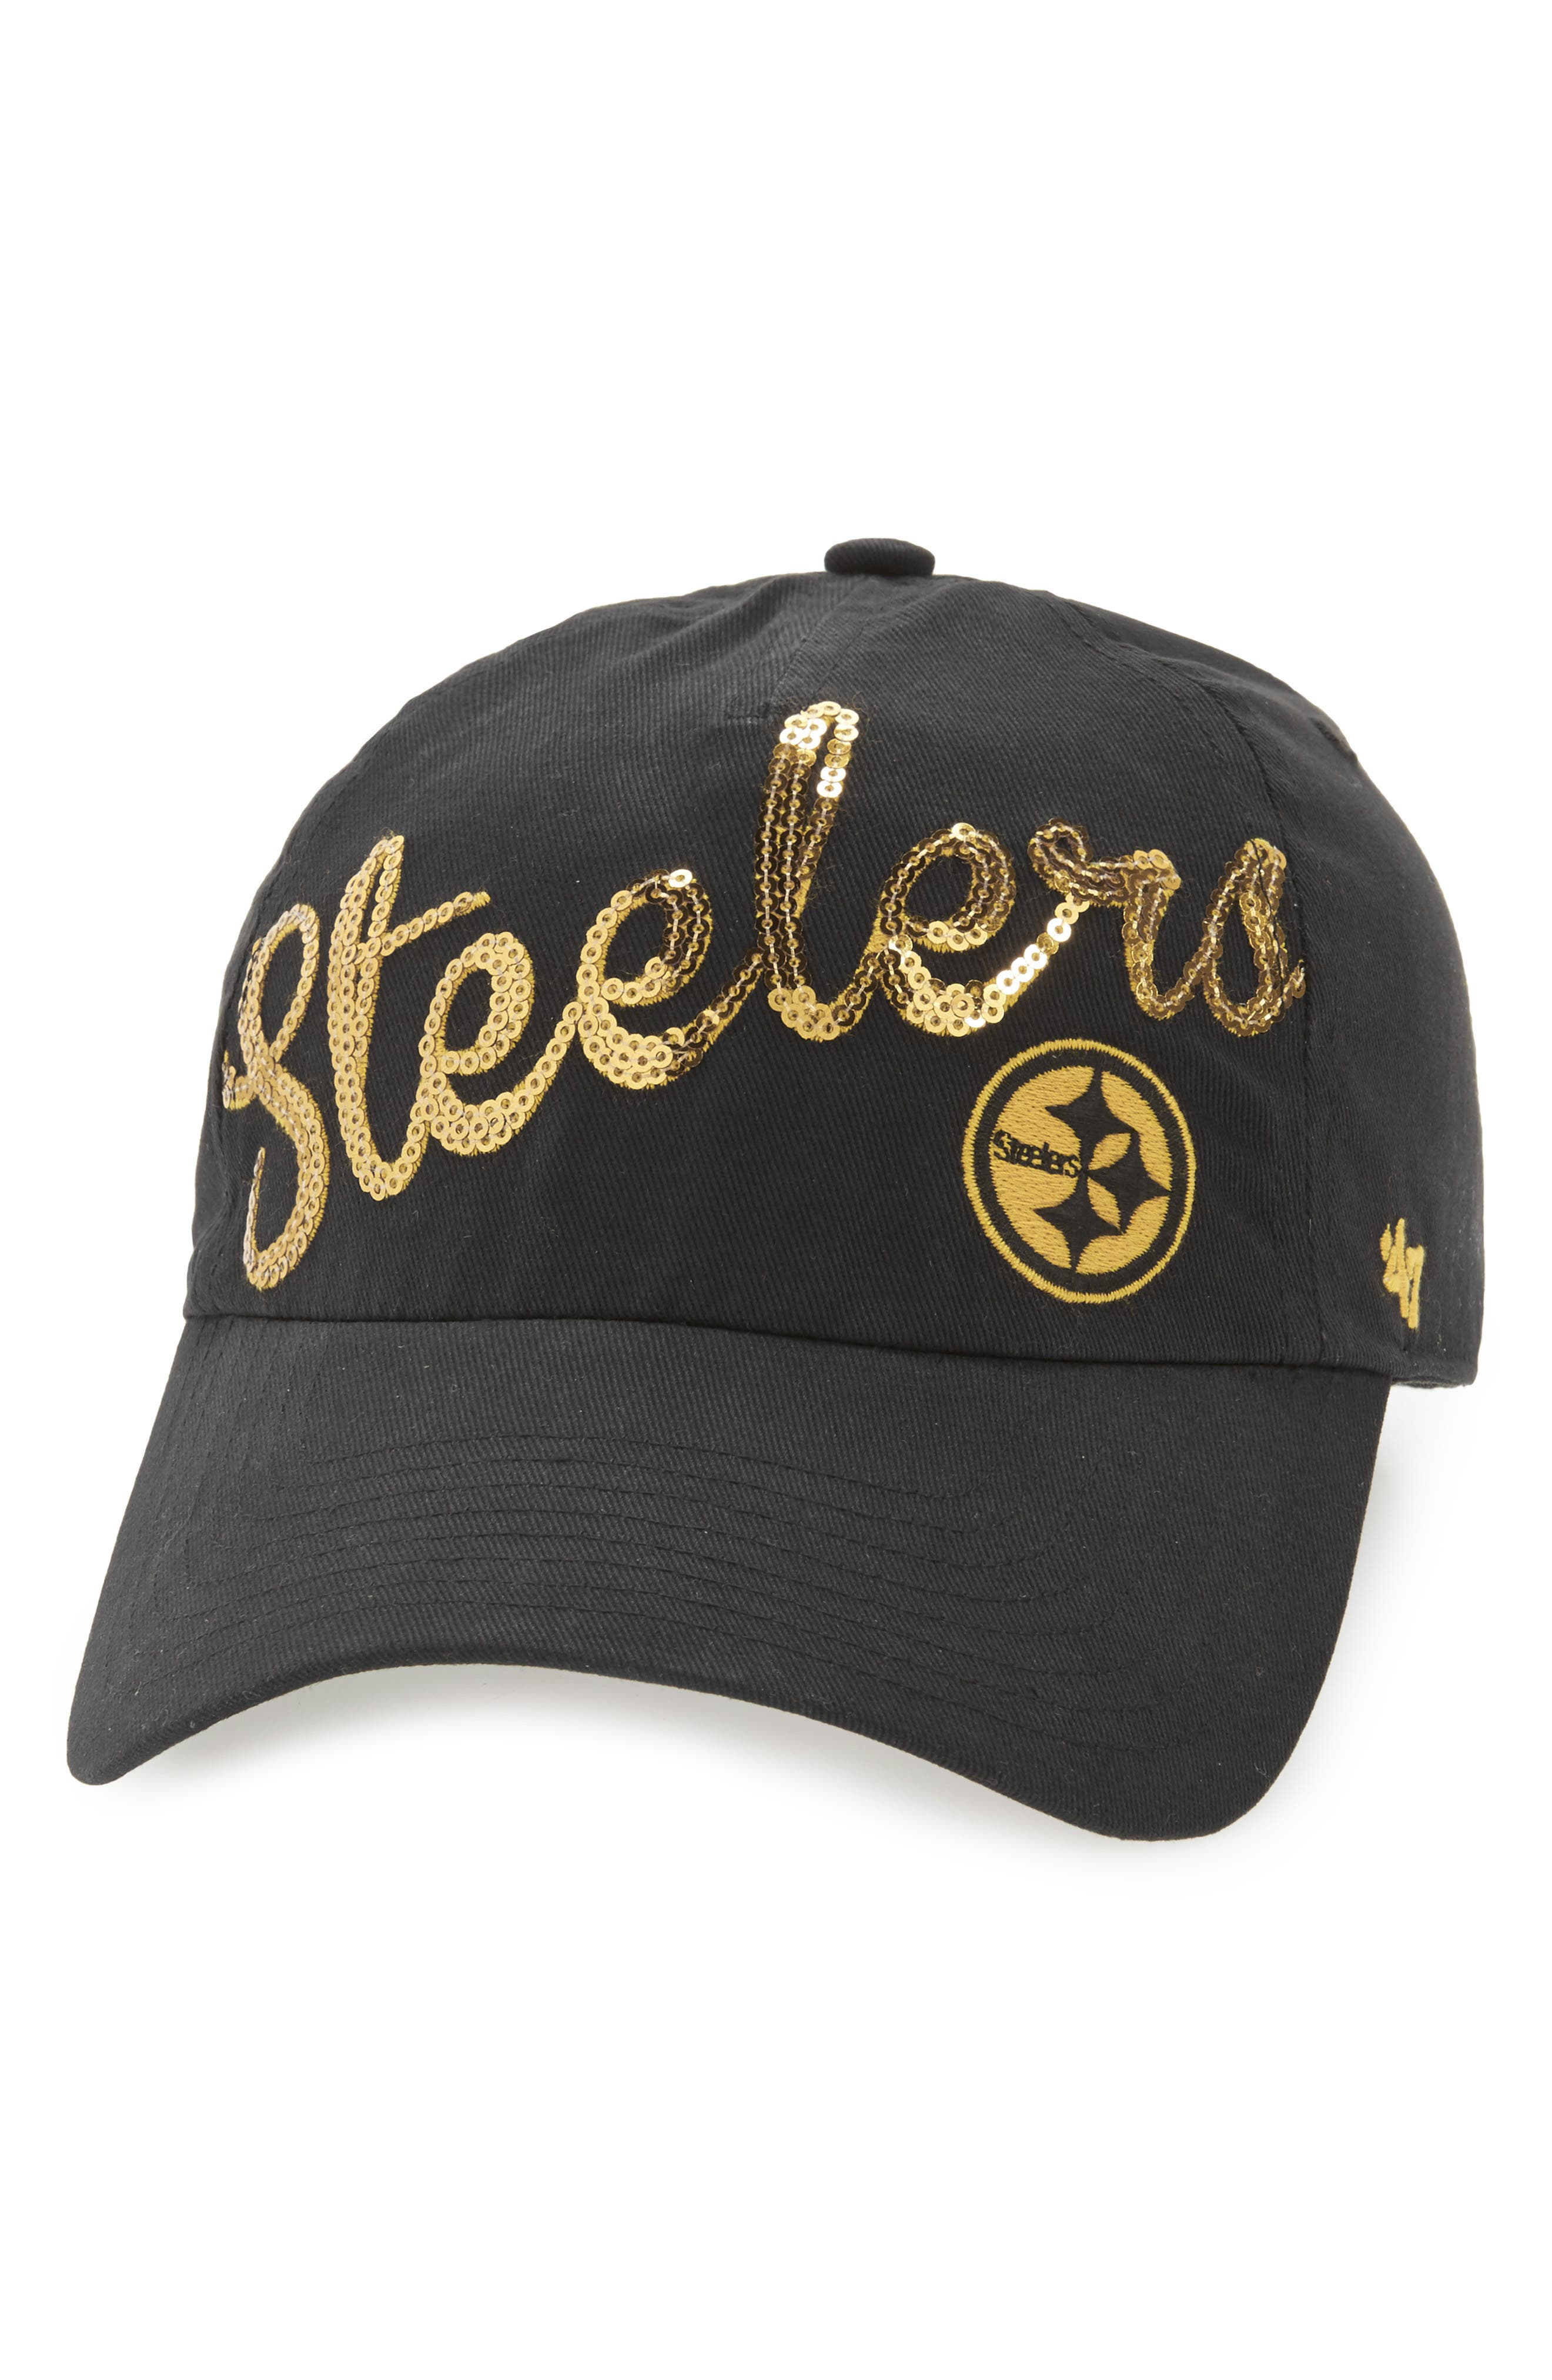 Main Image - '47 Pittsburgh Steelers Sparkle Cap